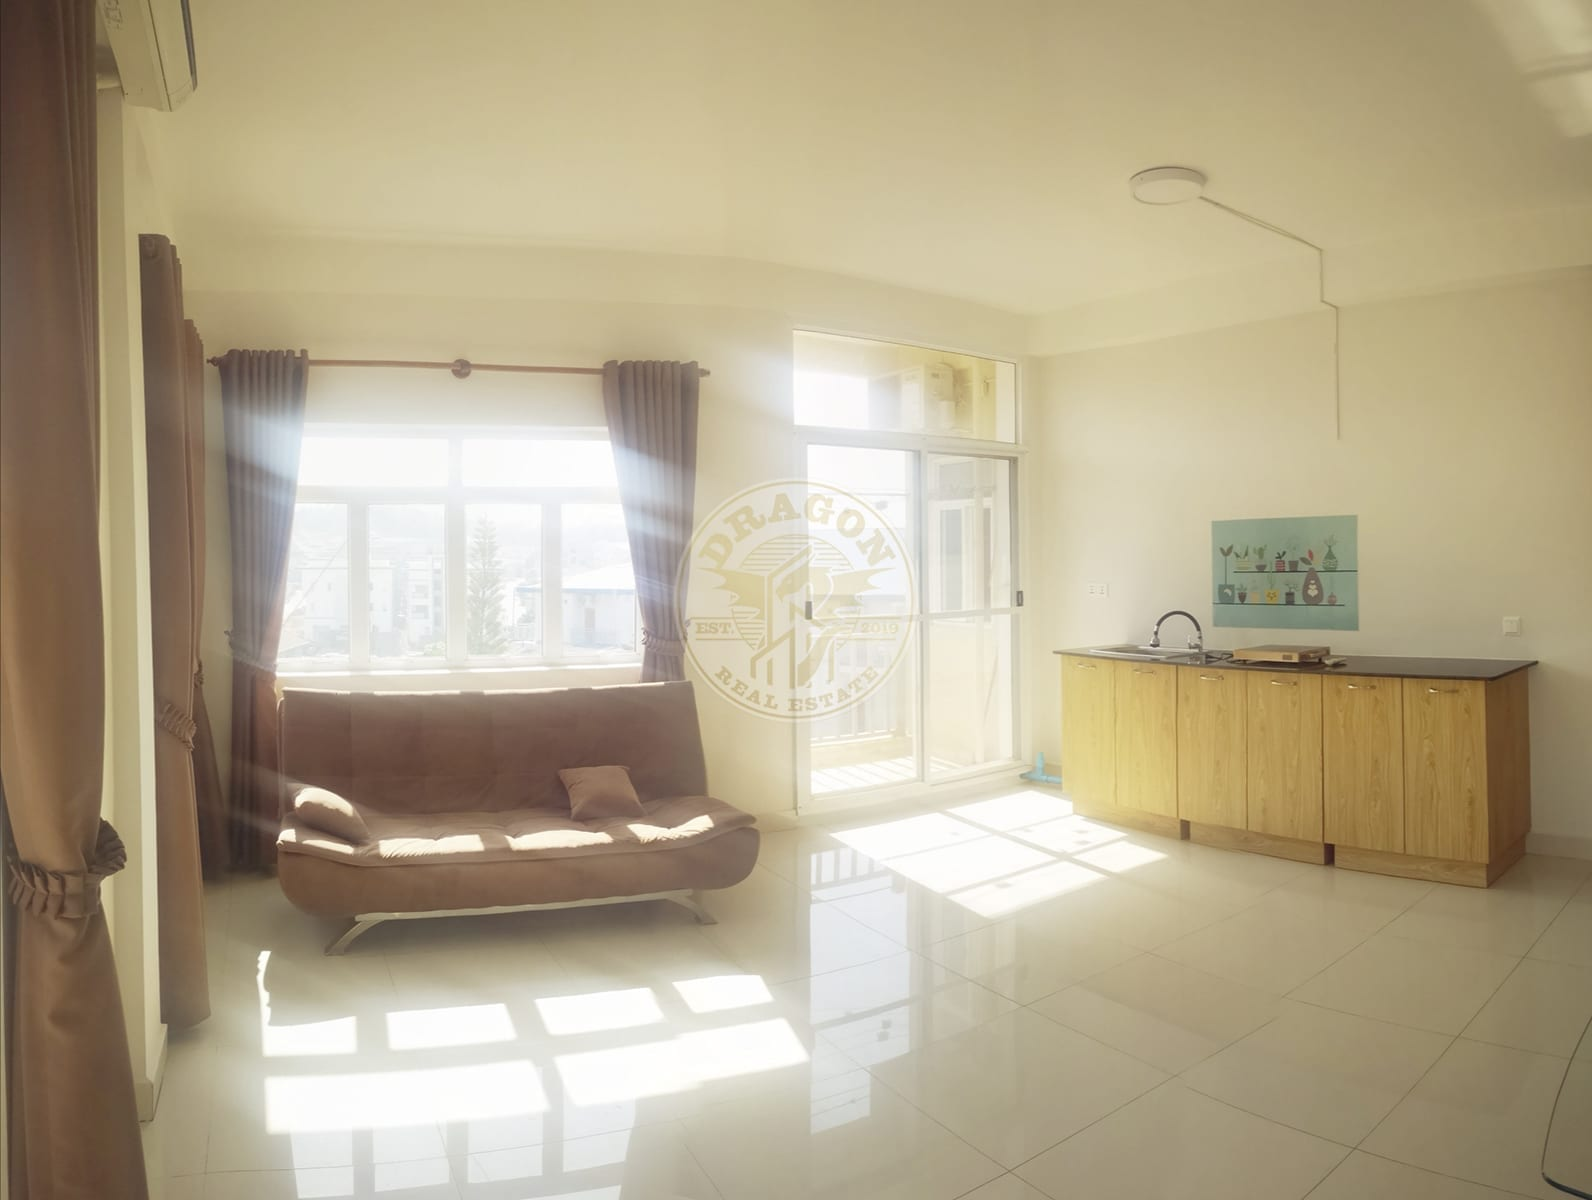 Apartment w/ Two balconies for Rent. Real Estate Sihanoukville